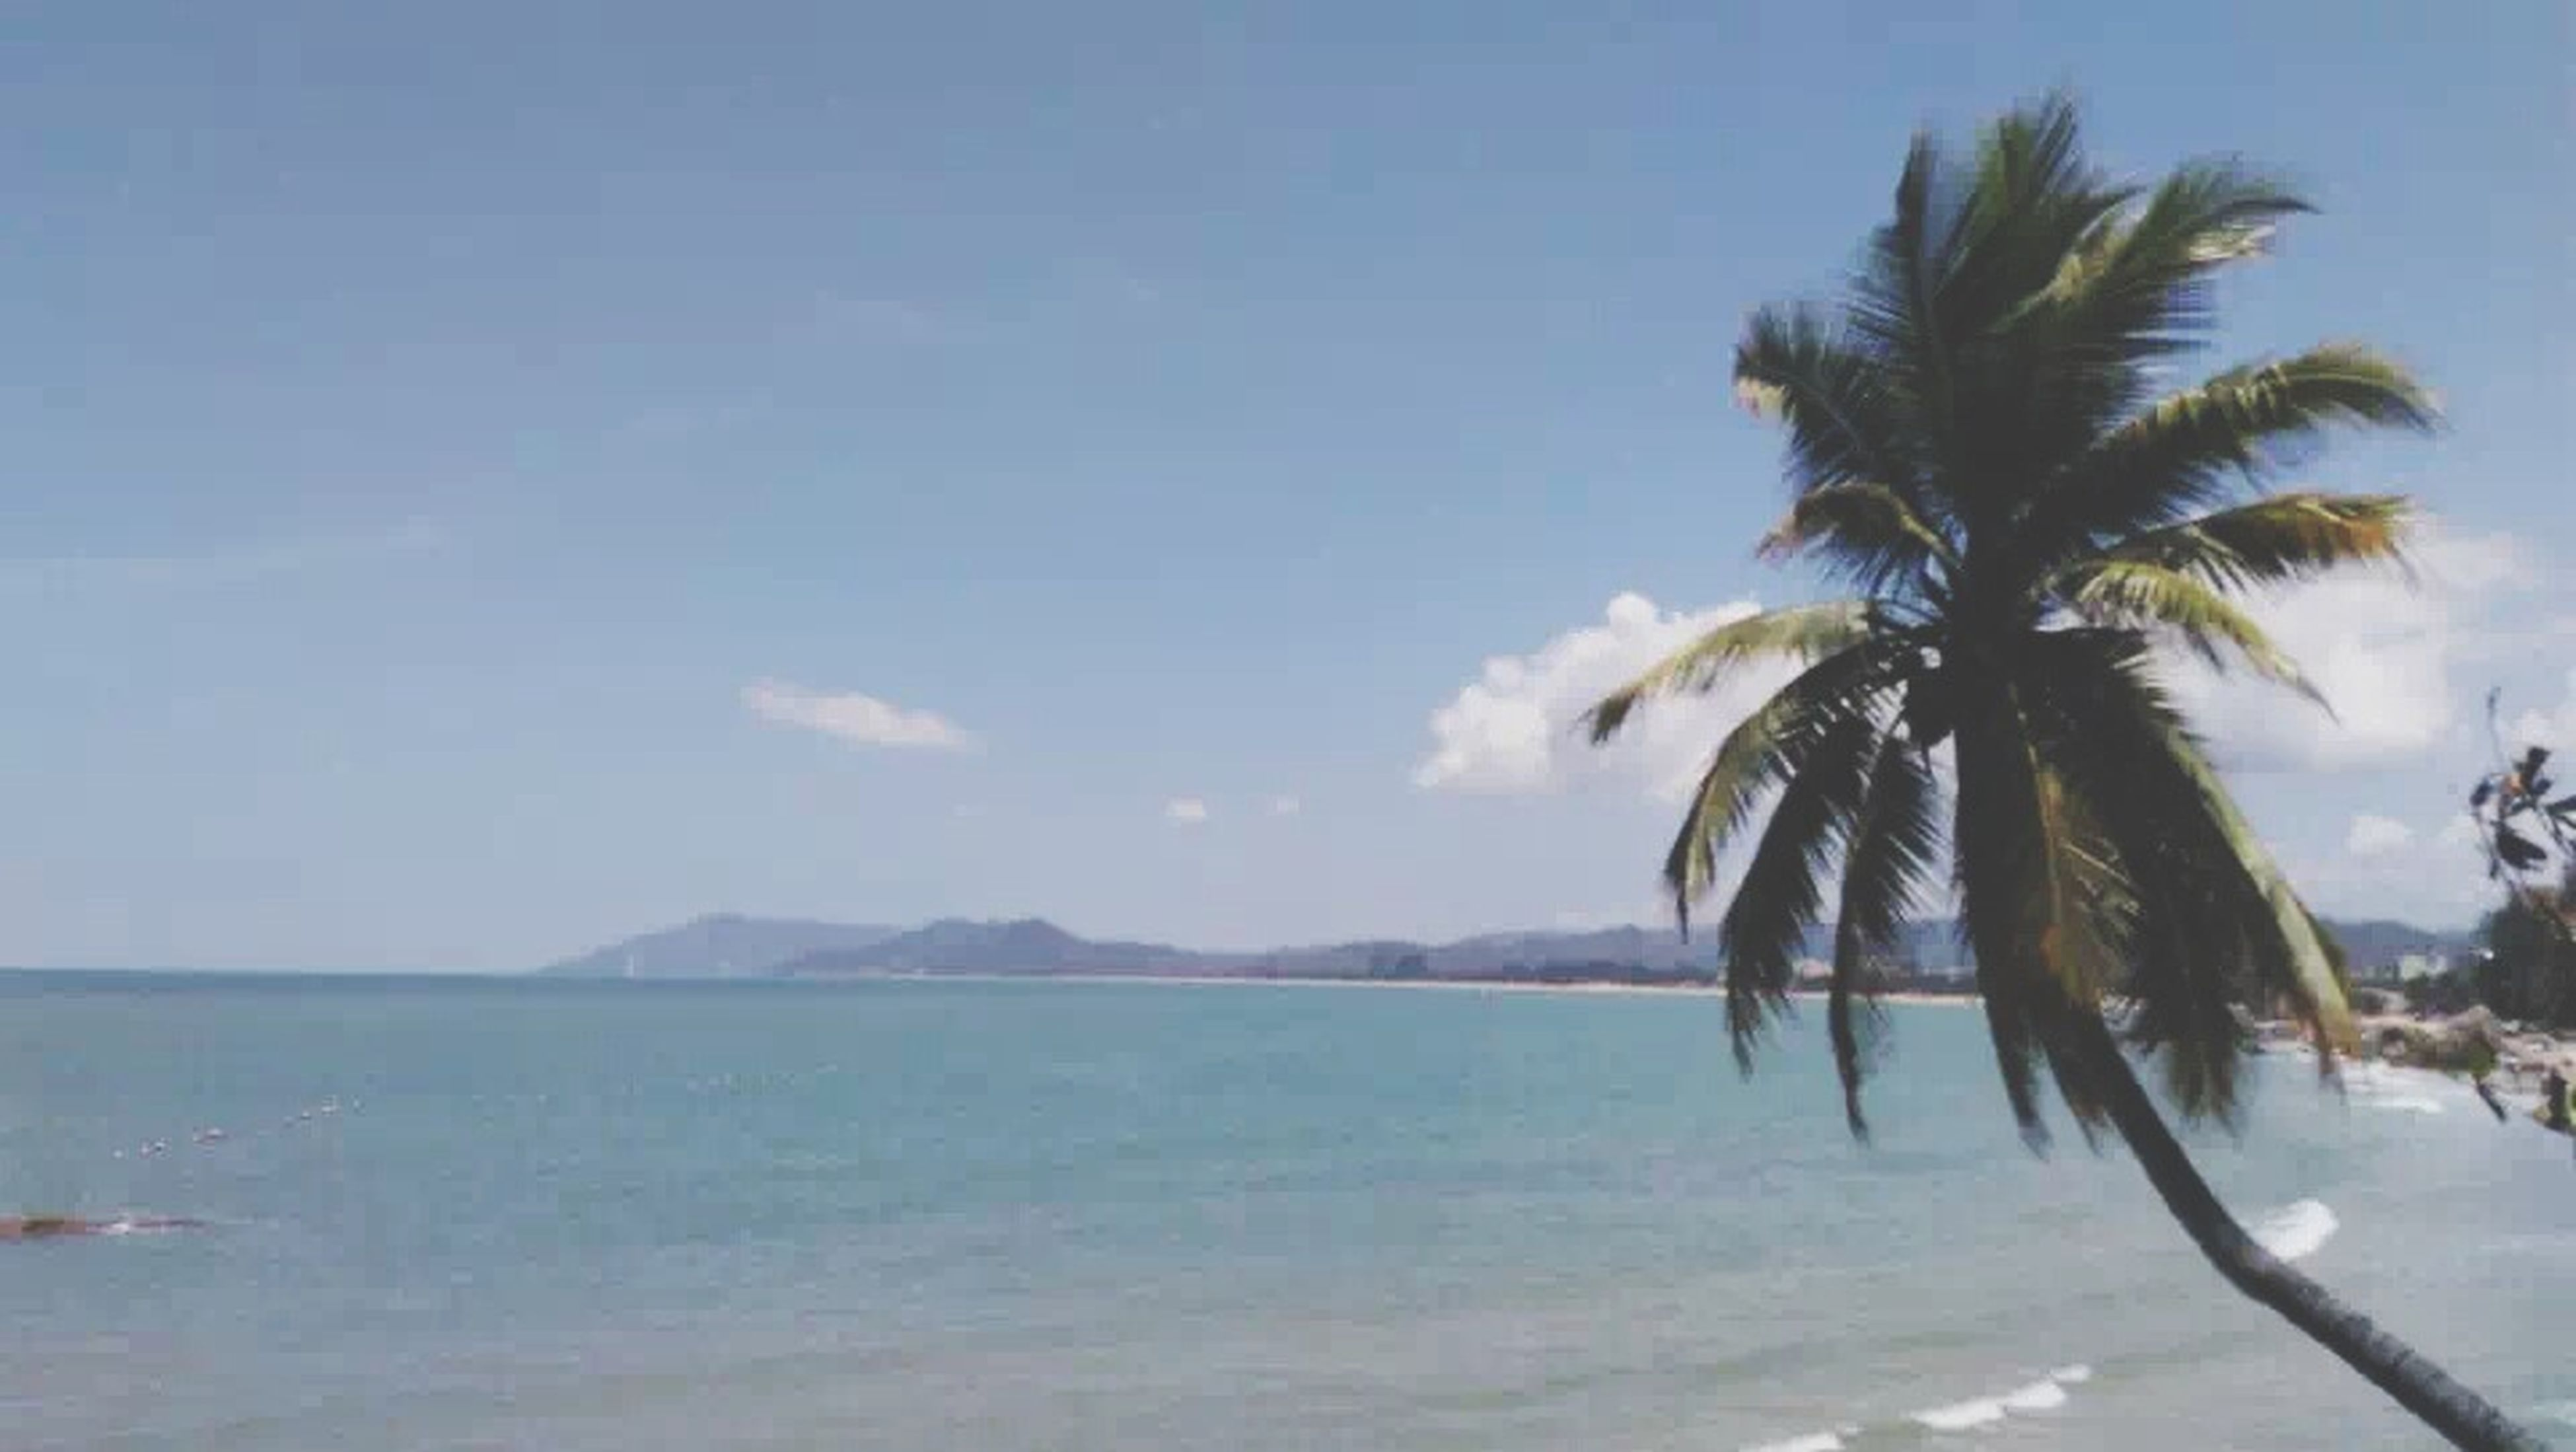 sea, palm tree, water, beach, tranquility, sky, tranquil scene, scenics, horizon over water, beauty in nature, tree, nature, shore, sand, idyllic, day, mountain, outdoors, remote, cloud - sky